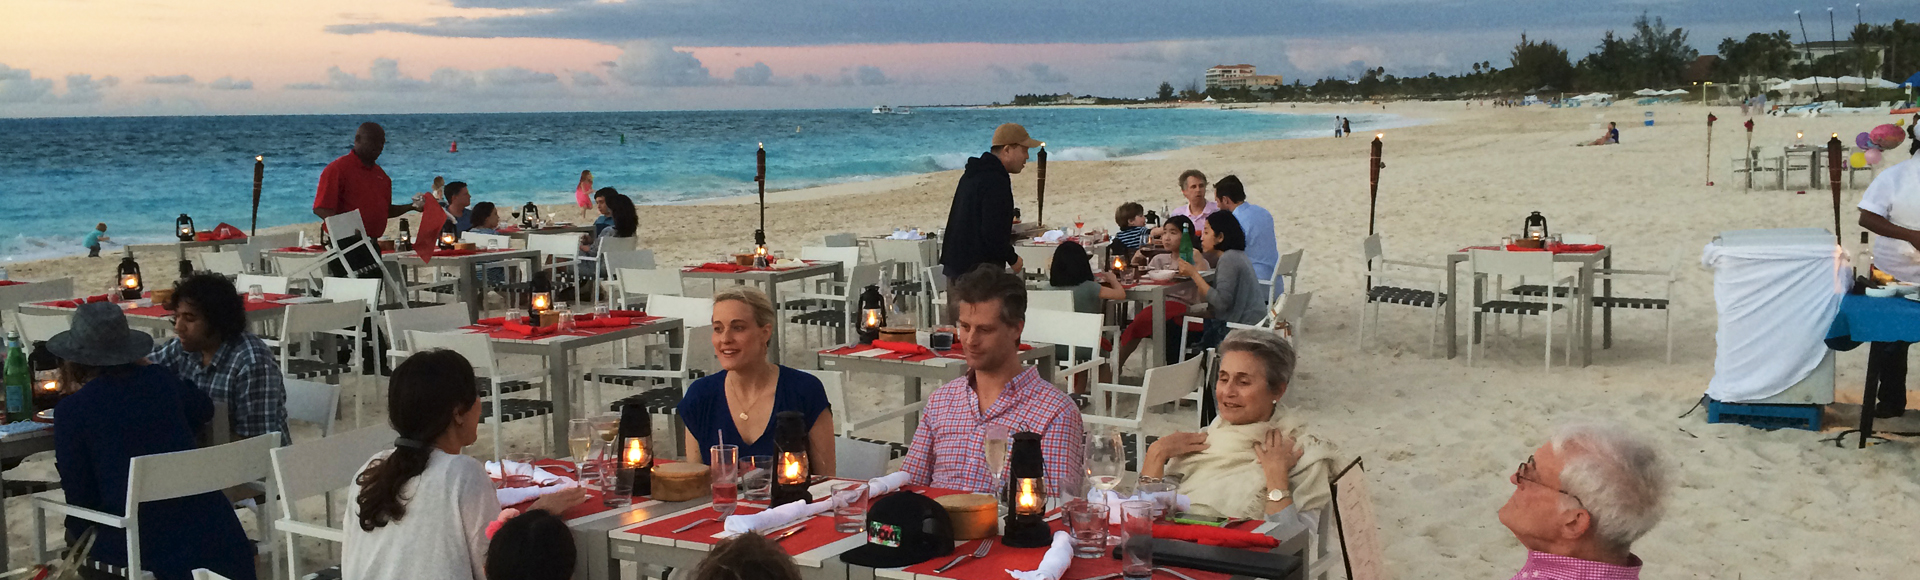 Dinner on the Grace Bay sandy beach at Turks and Caicos Islands